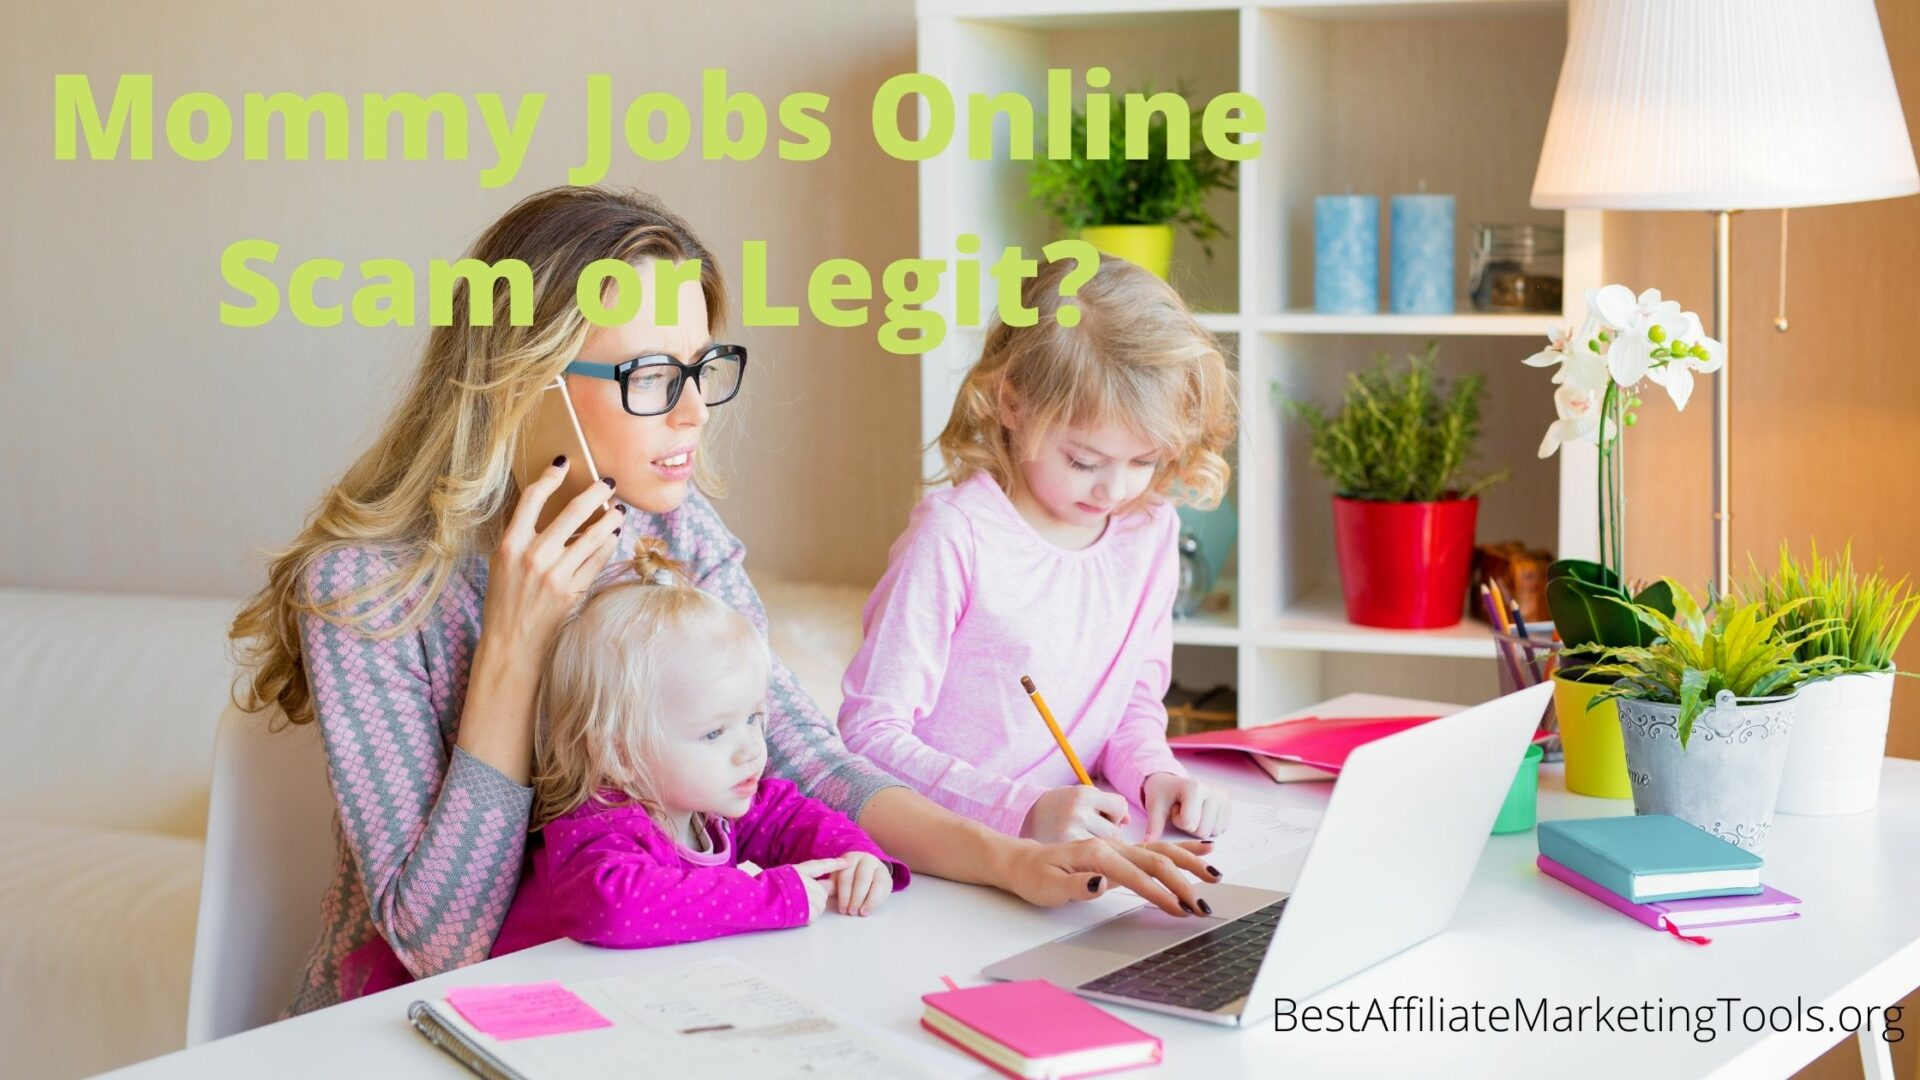 Mommy Jobs Online Scam or Legit